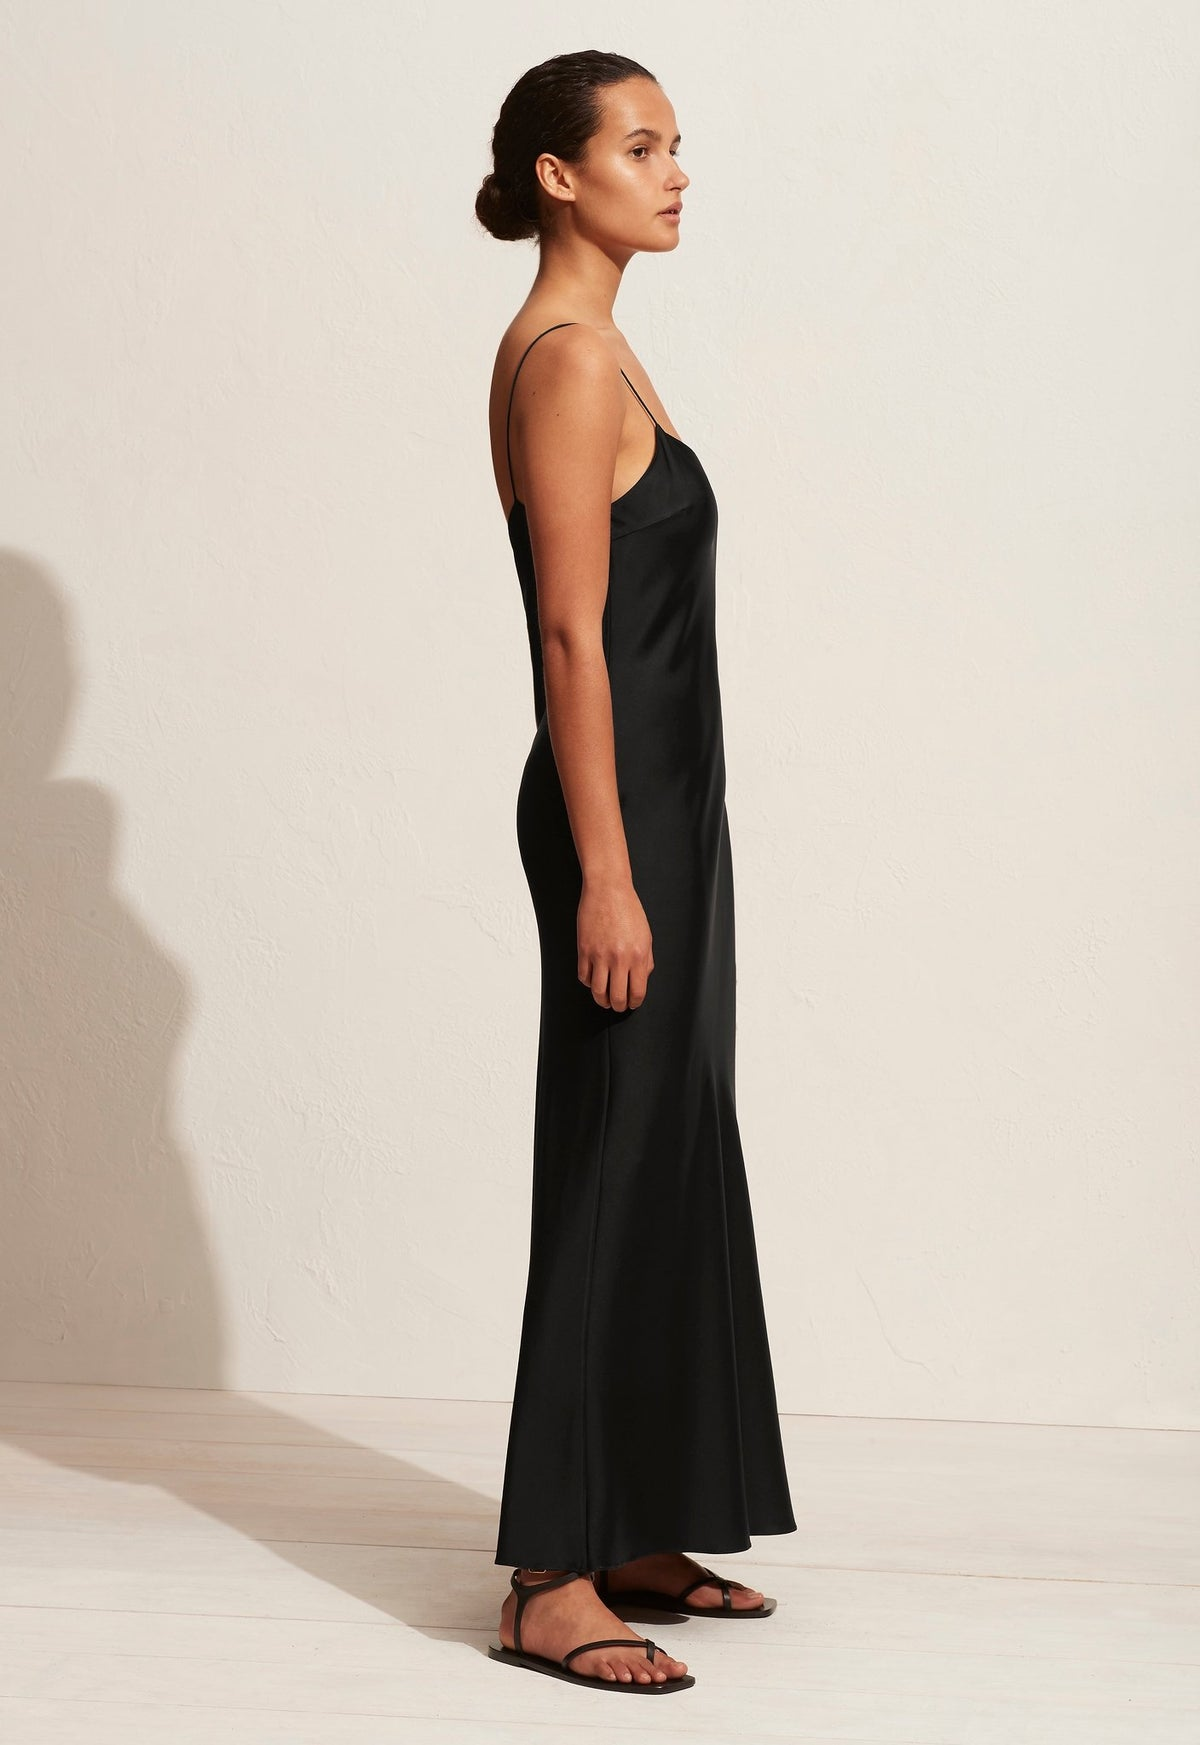 The Bias Slip Dress